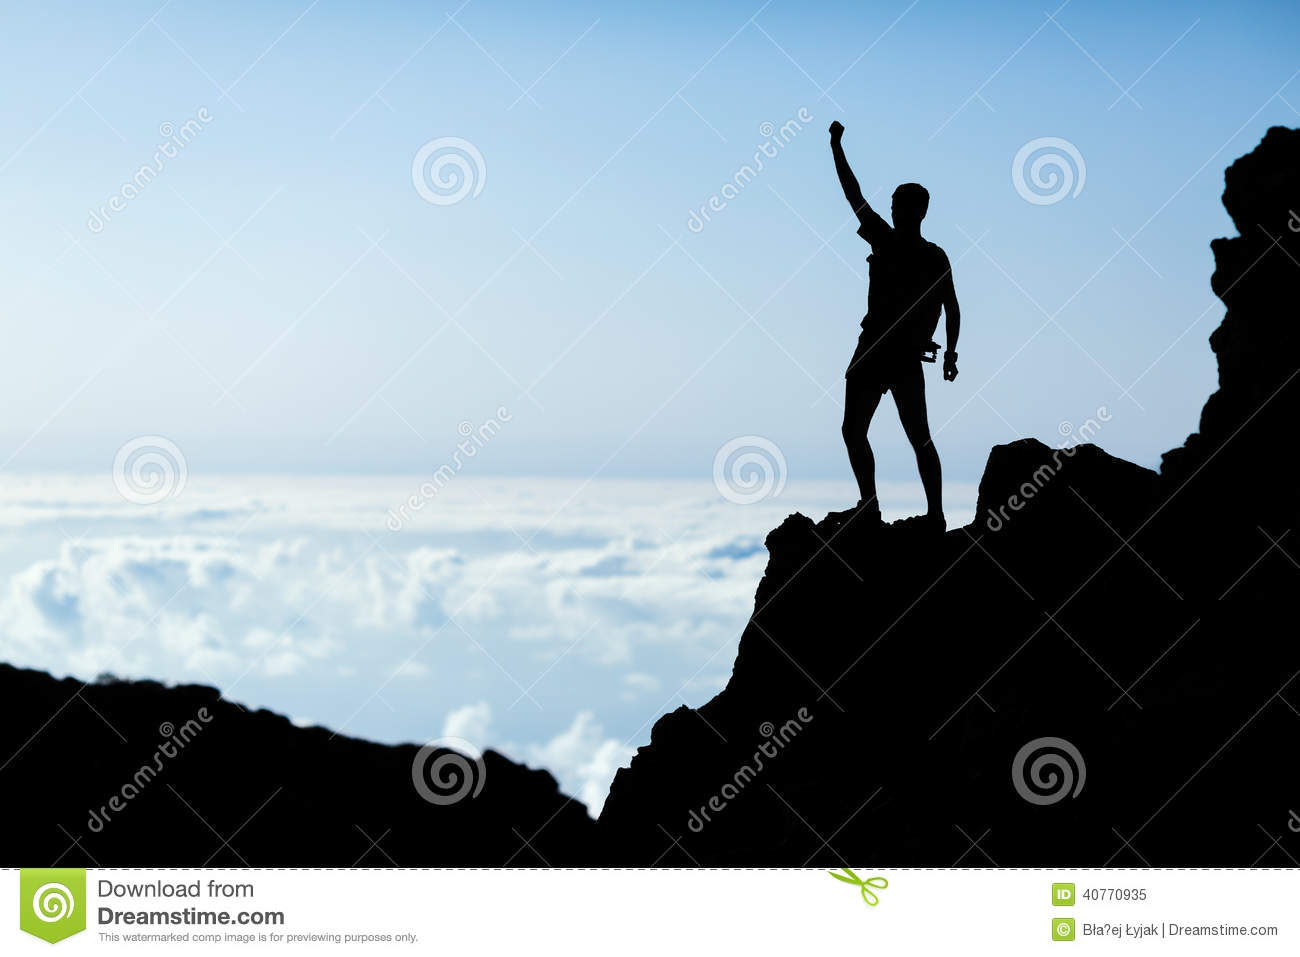 Hiking success silhouette, man trail runner in mountains